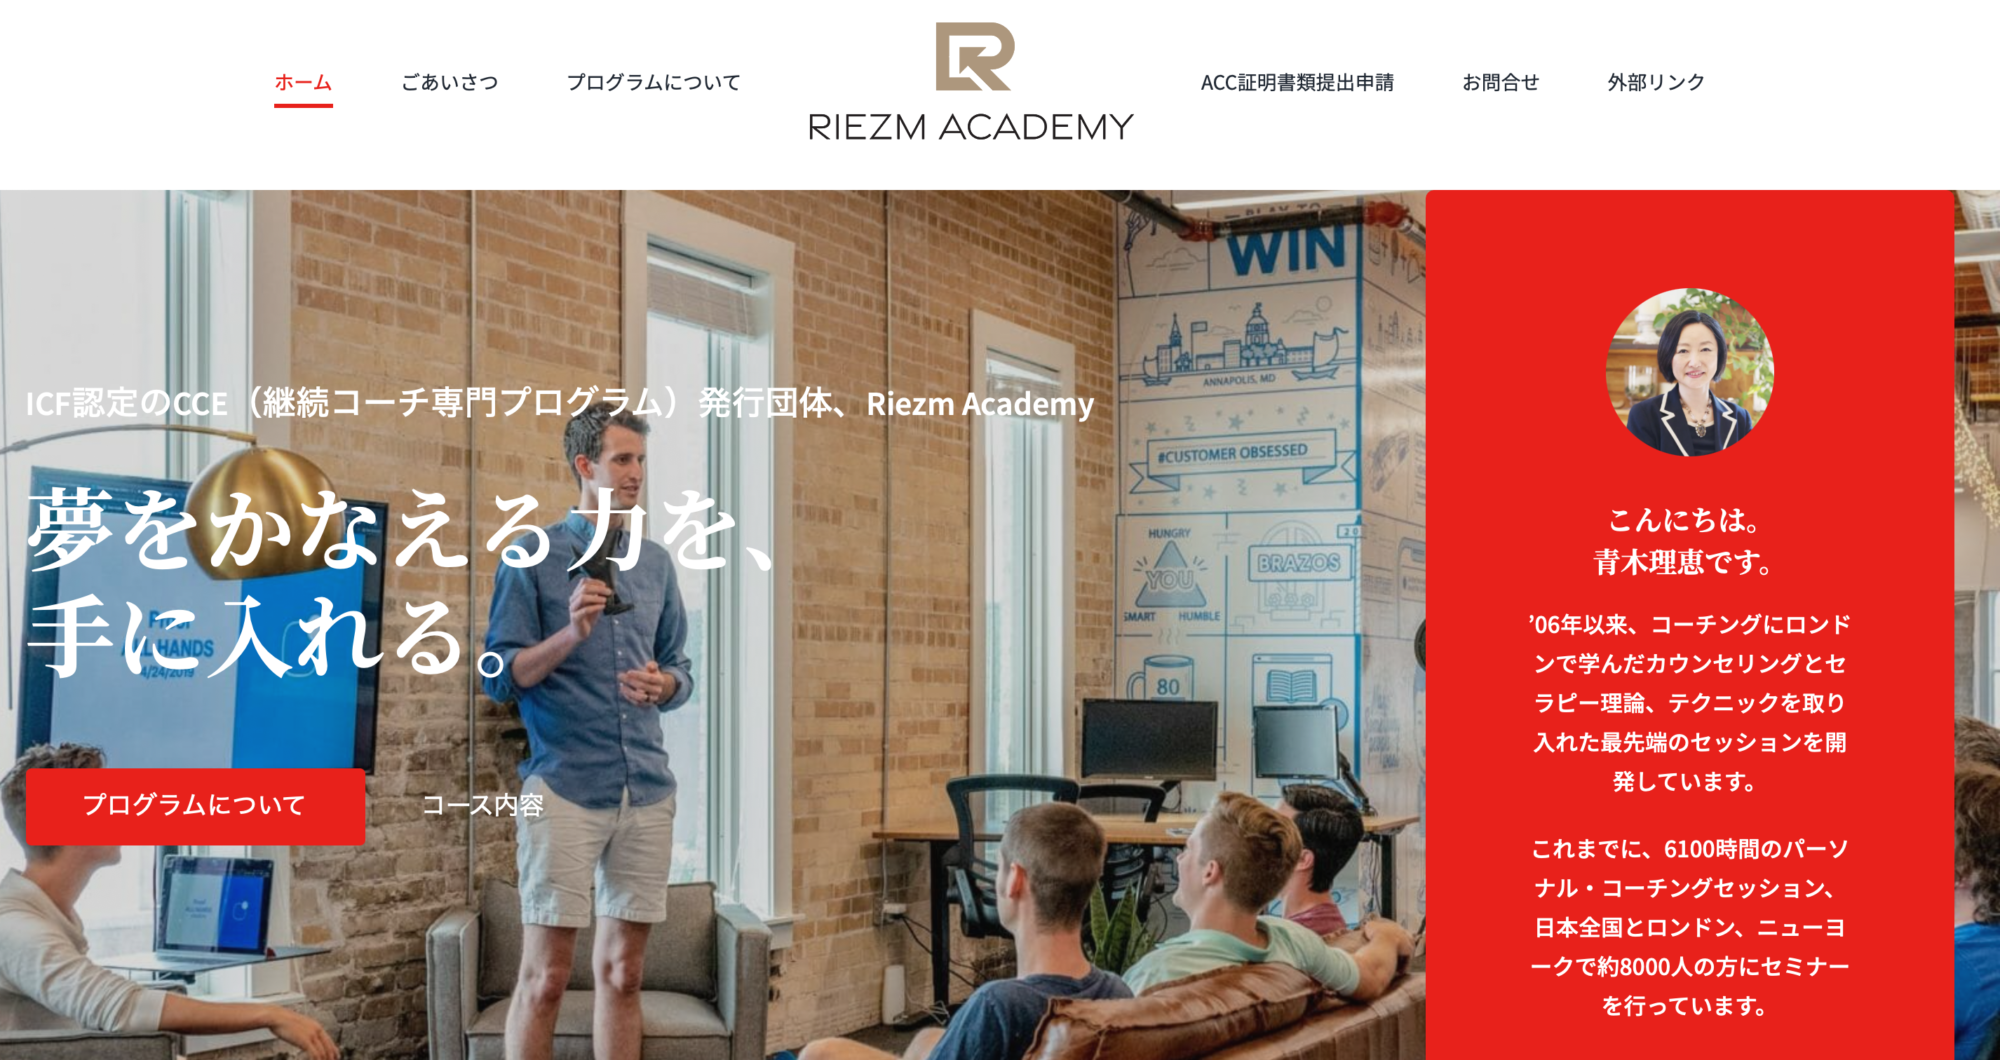 RIEZM Academy 誕生します